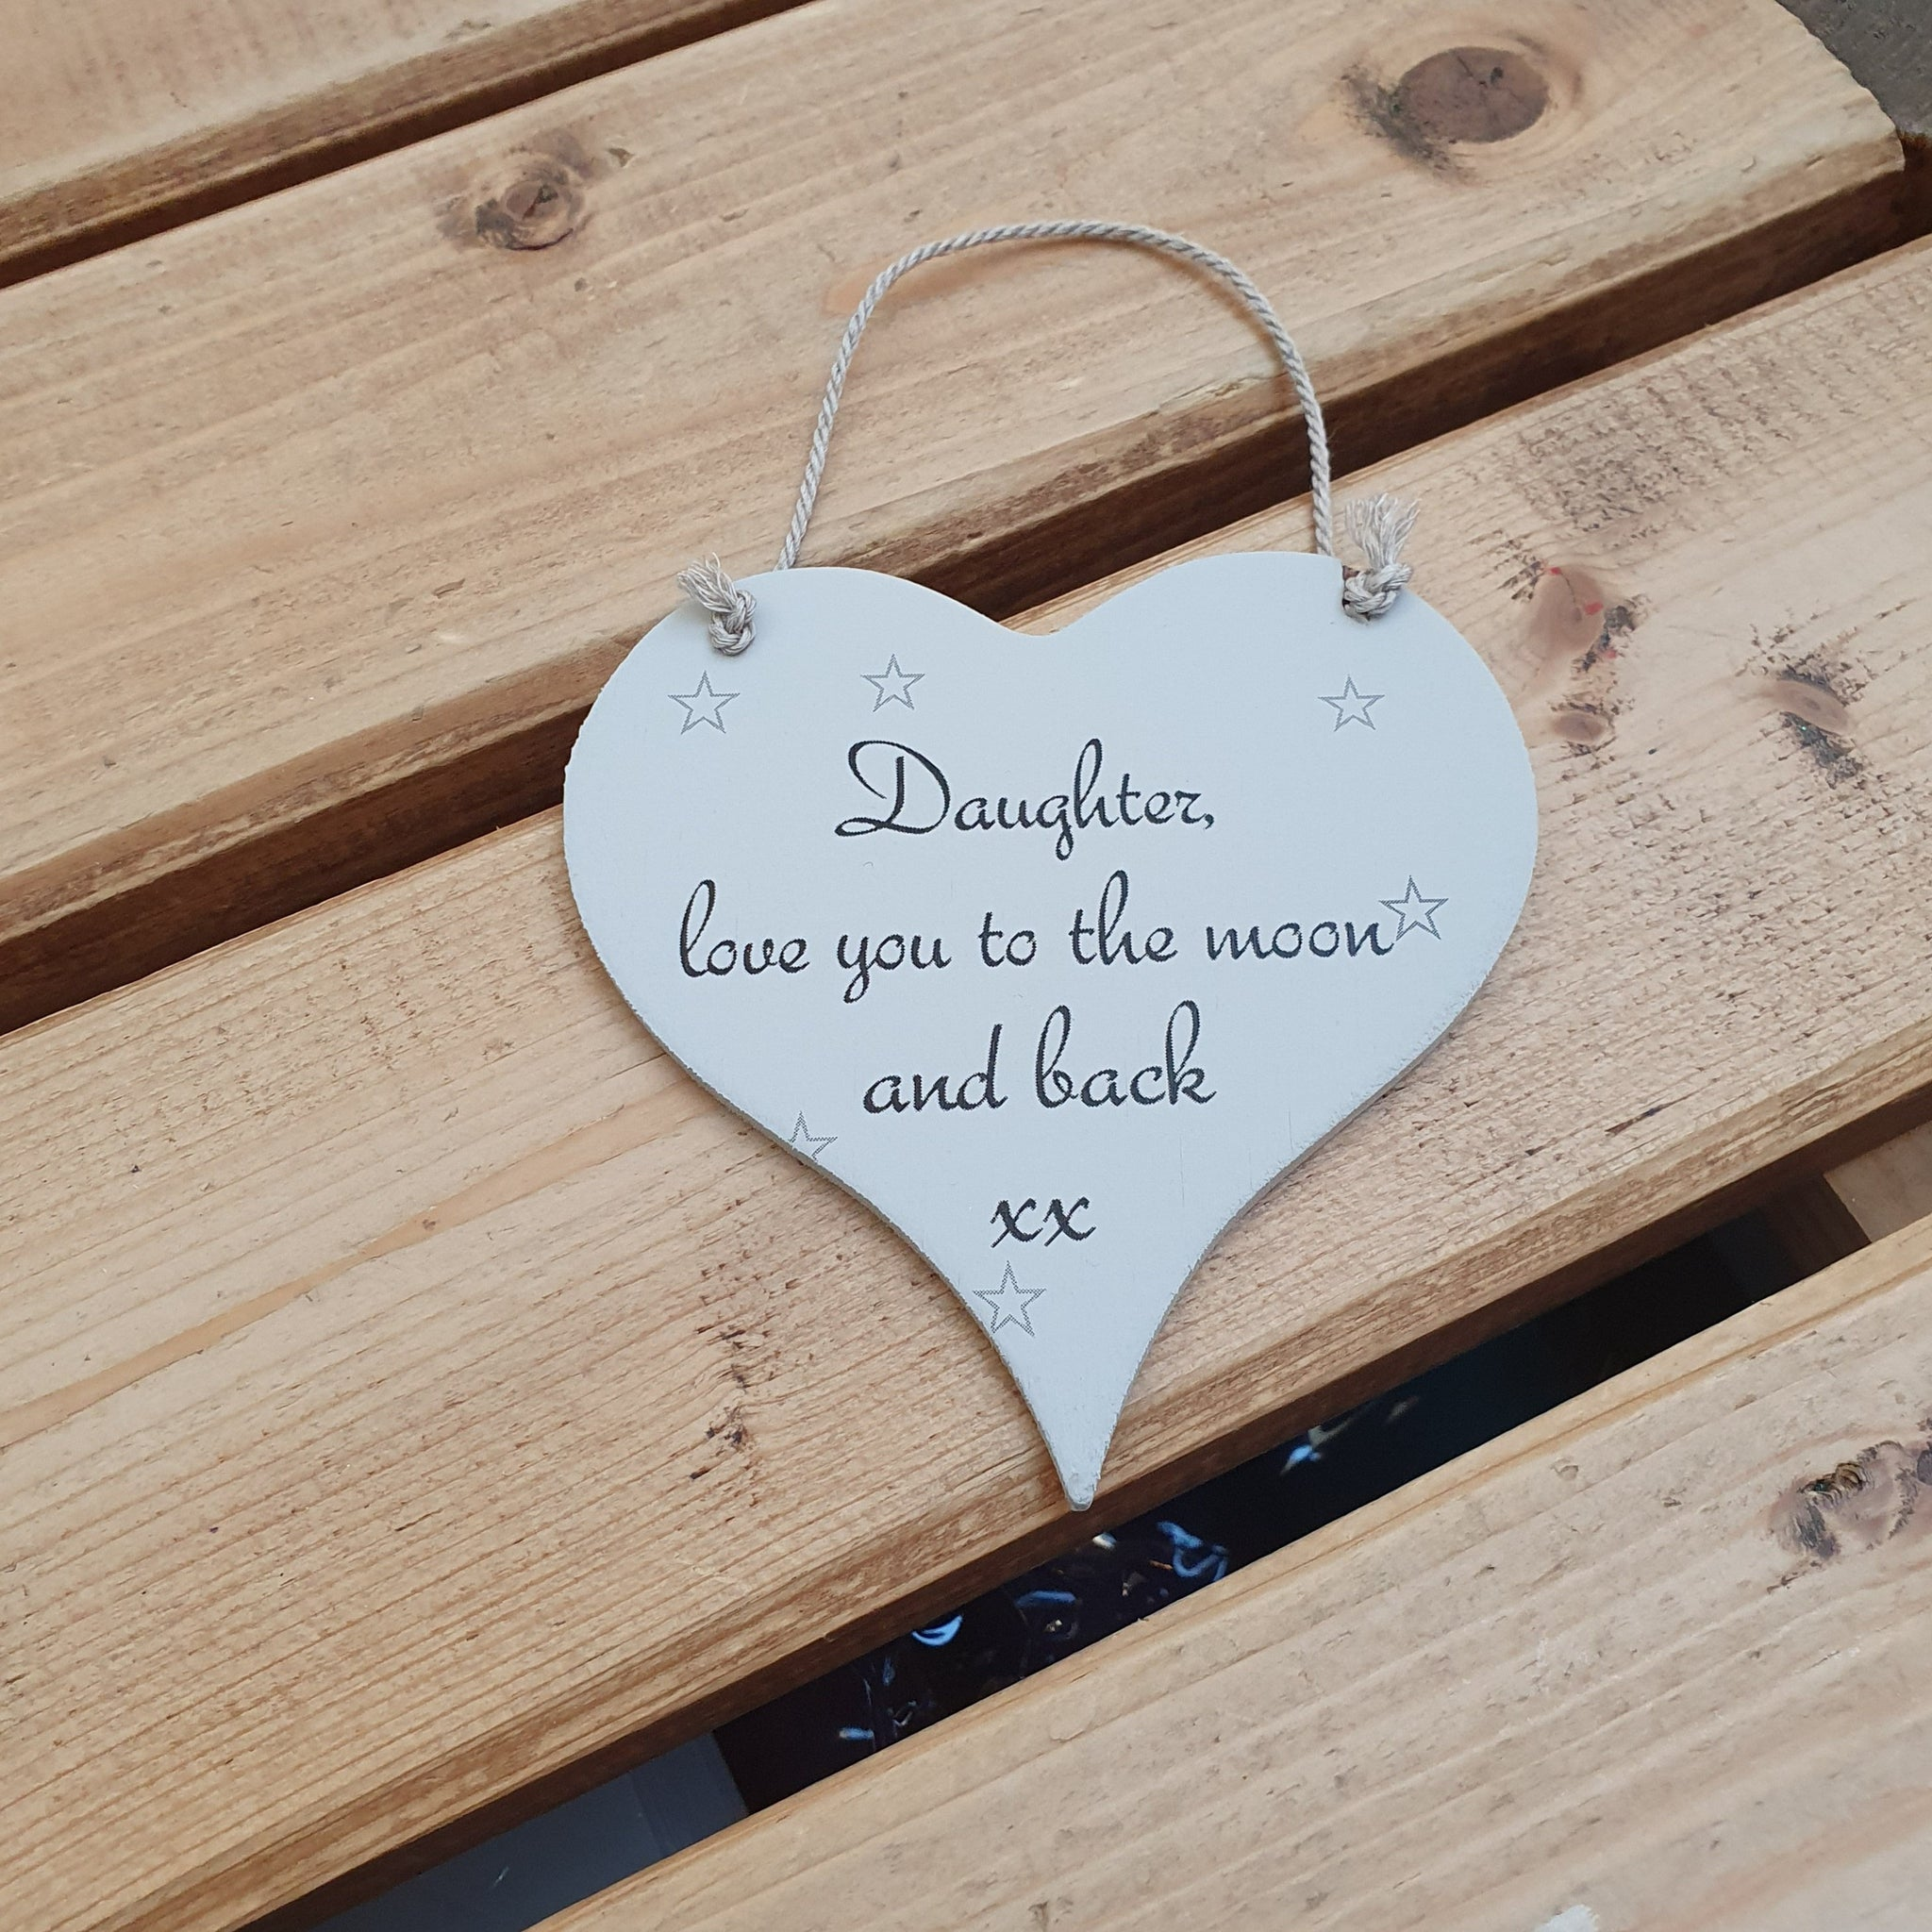 Hanging wooden heart - hand painted with the printed slogan:  'Daughter, Love you to the moon and back.'